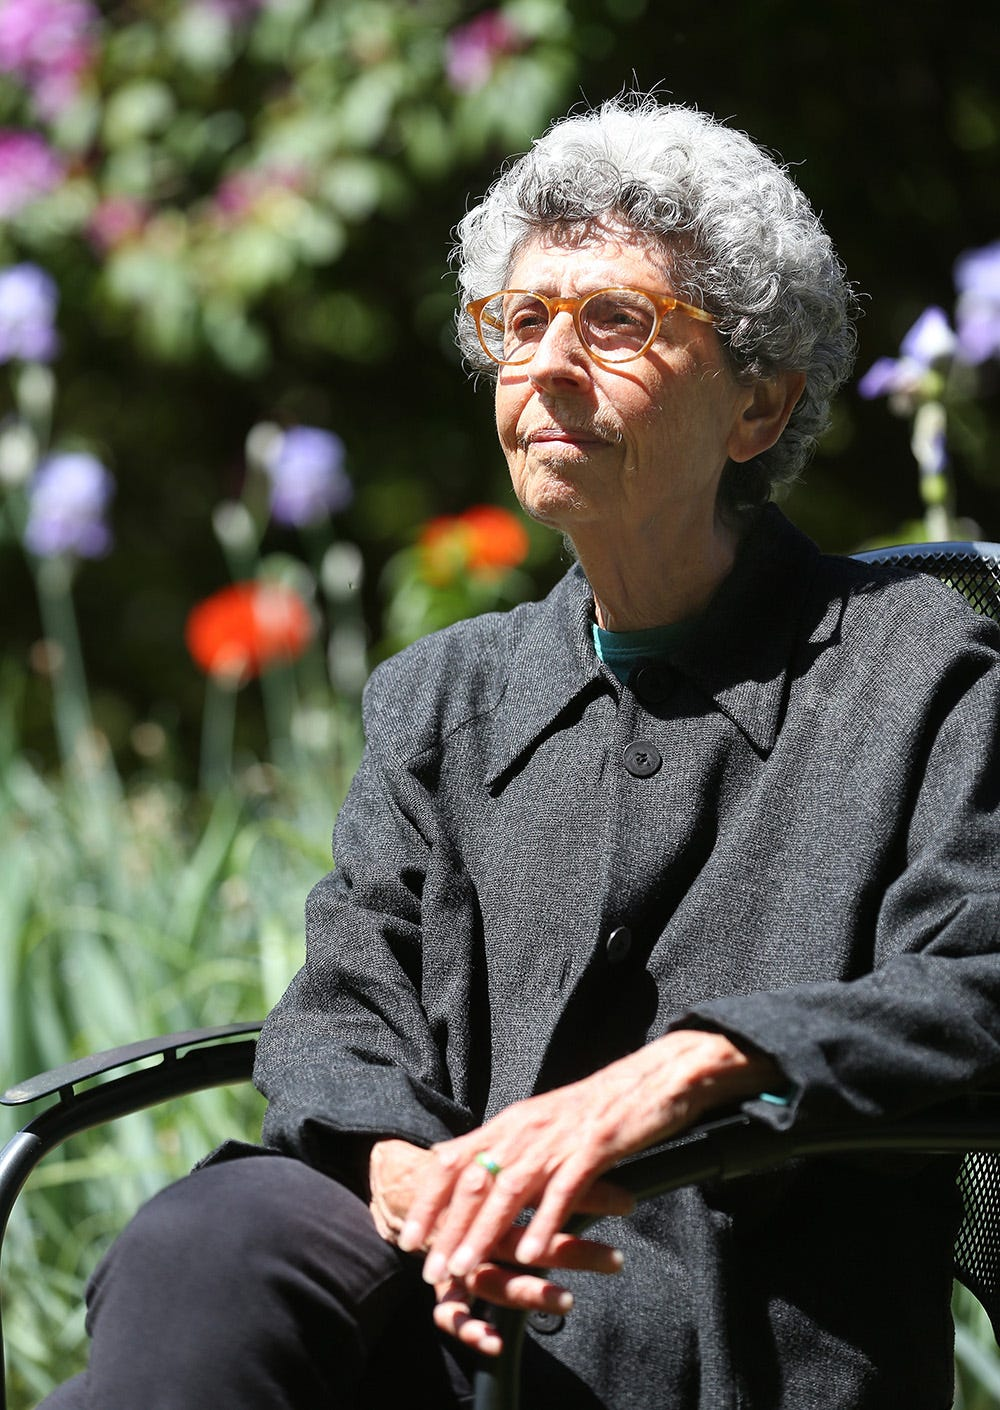 Roberta Richman, a retired warden and assistant director of rehabilitative services at the Adult Correctional Institutions, supports a bill that would restrict the use of solitary confinement in Rhode Island.